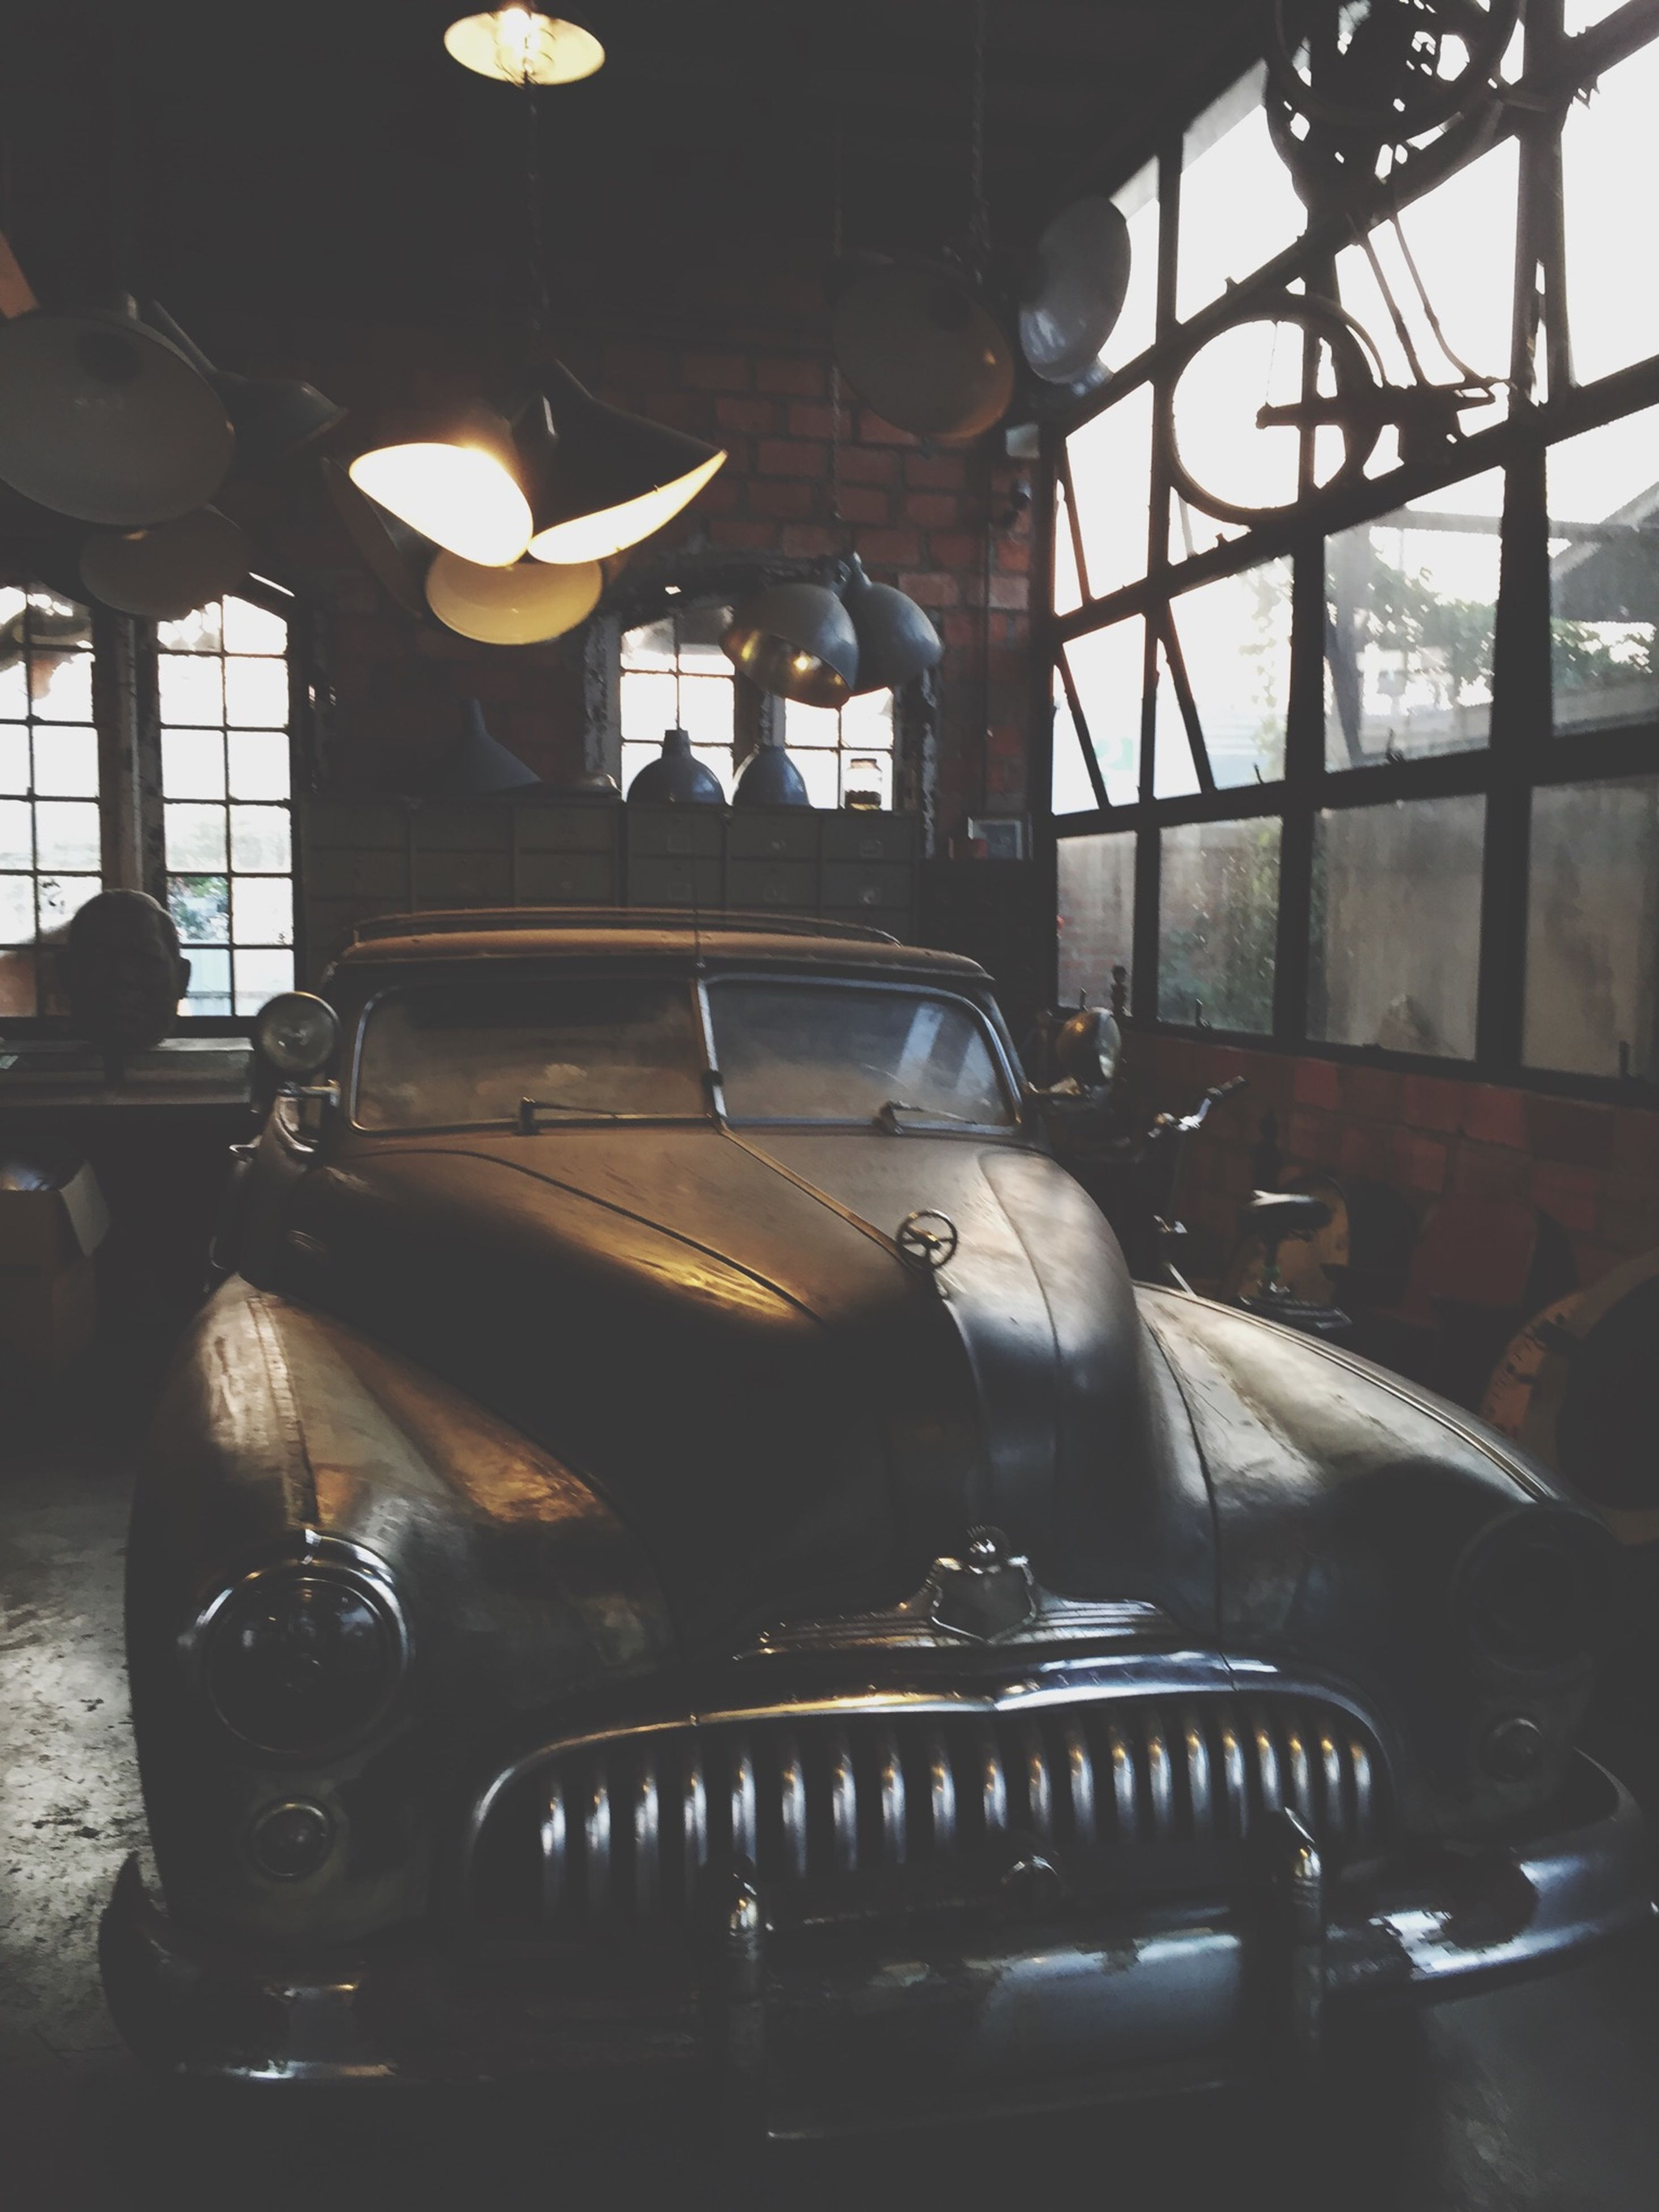 indoors, transportation, window, mode of transport, chair, interior, old-fashioned, absence, table, home interior, land vehicle, vehicle interior, empty, glass - material, no people, car, retro styled, seat, transparent, lighting equipment